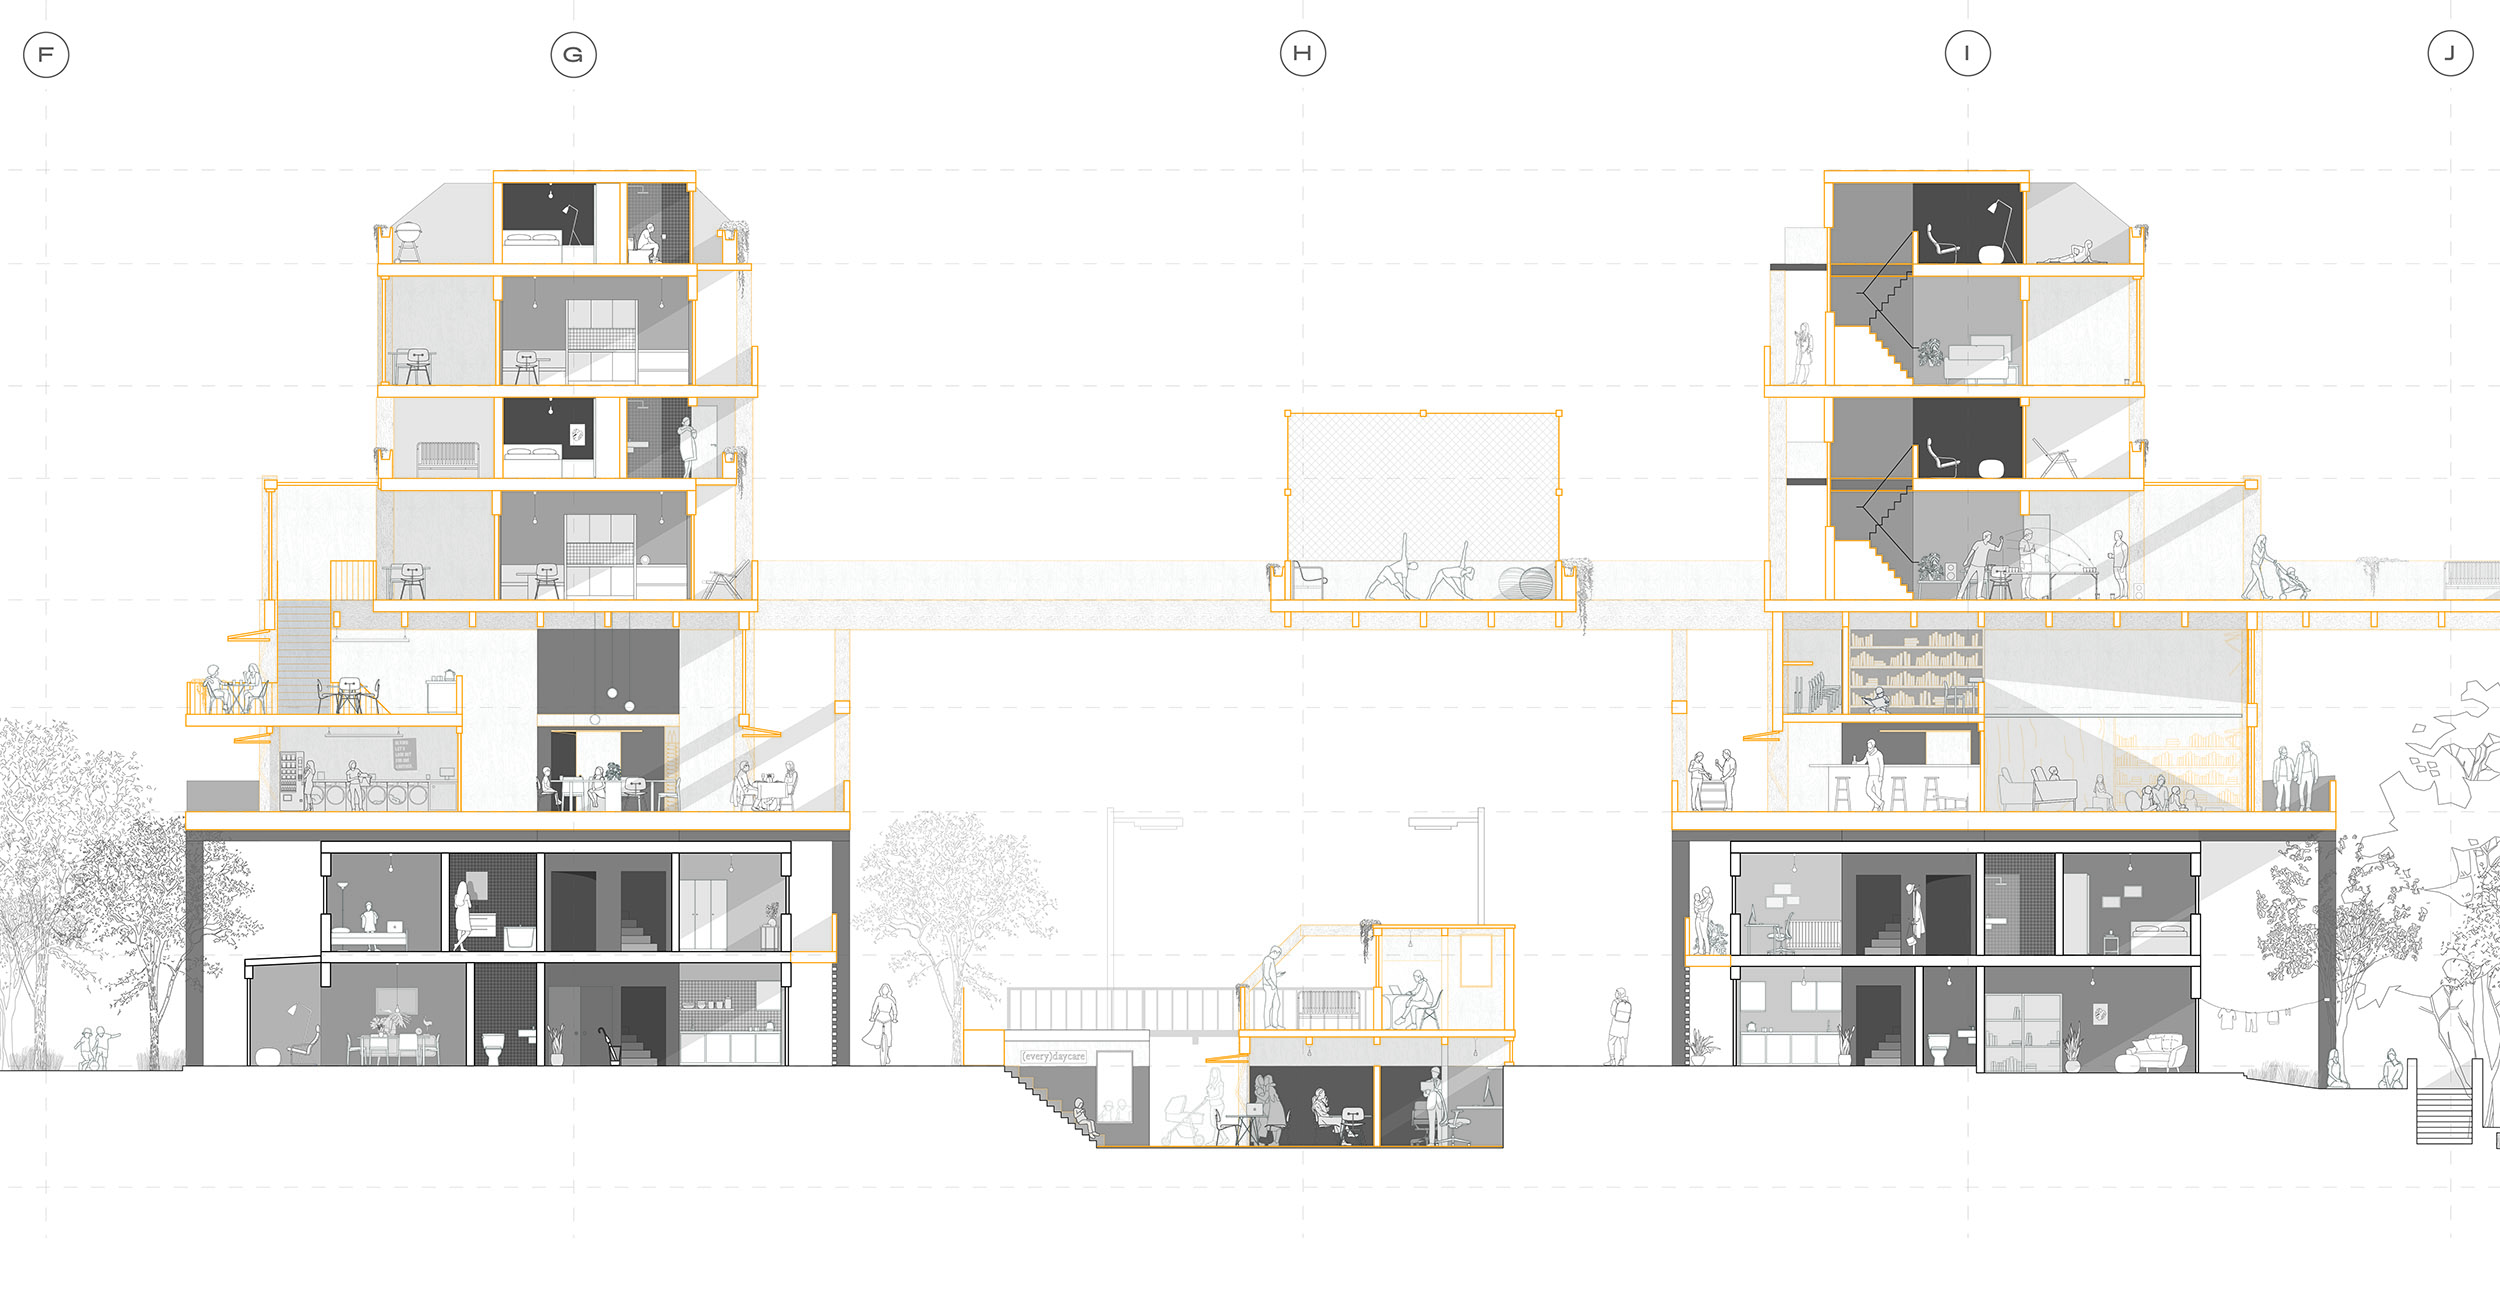 Vertical estate densification section drawing